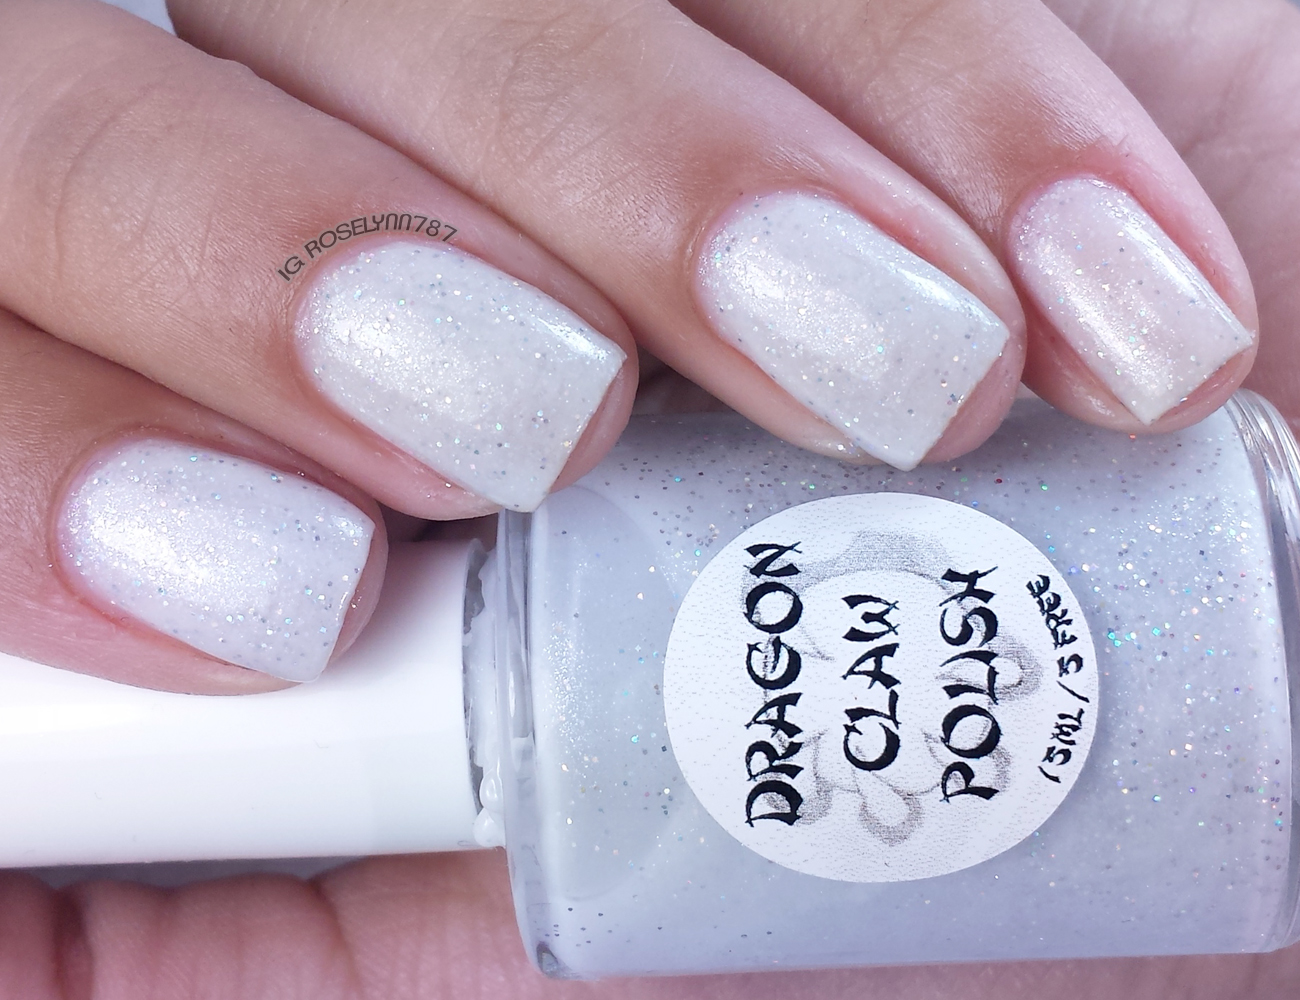 Dragon Claw Polish - Holo White Stripes